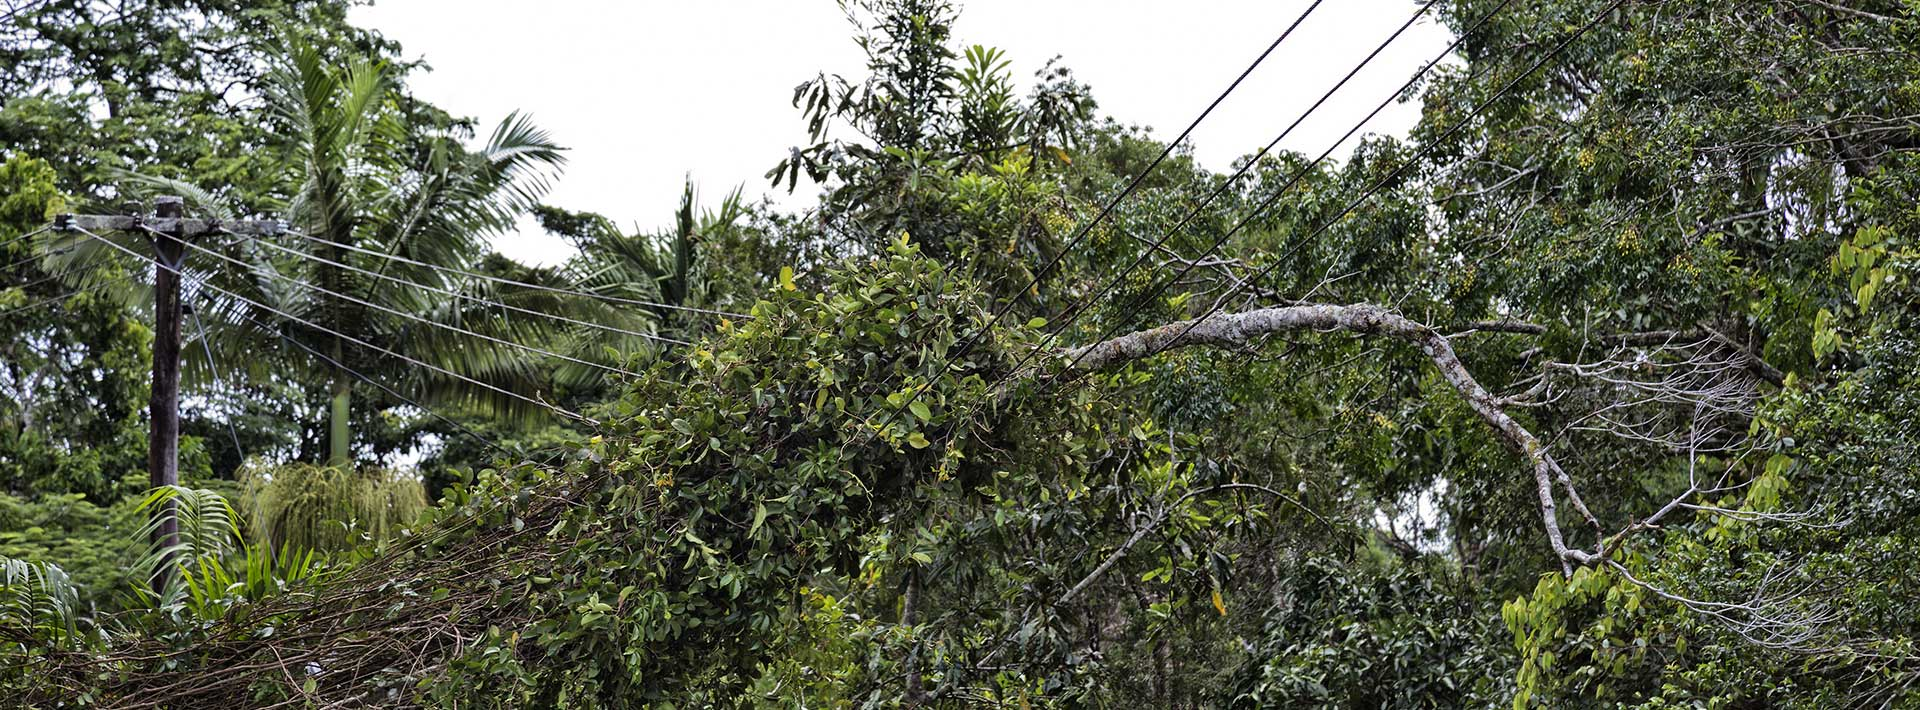 Tree fallen across power lines - emergency tree cutting services, Austral Trees